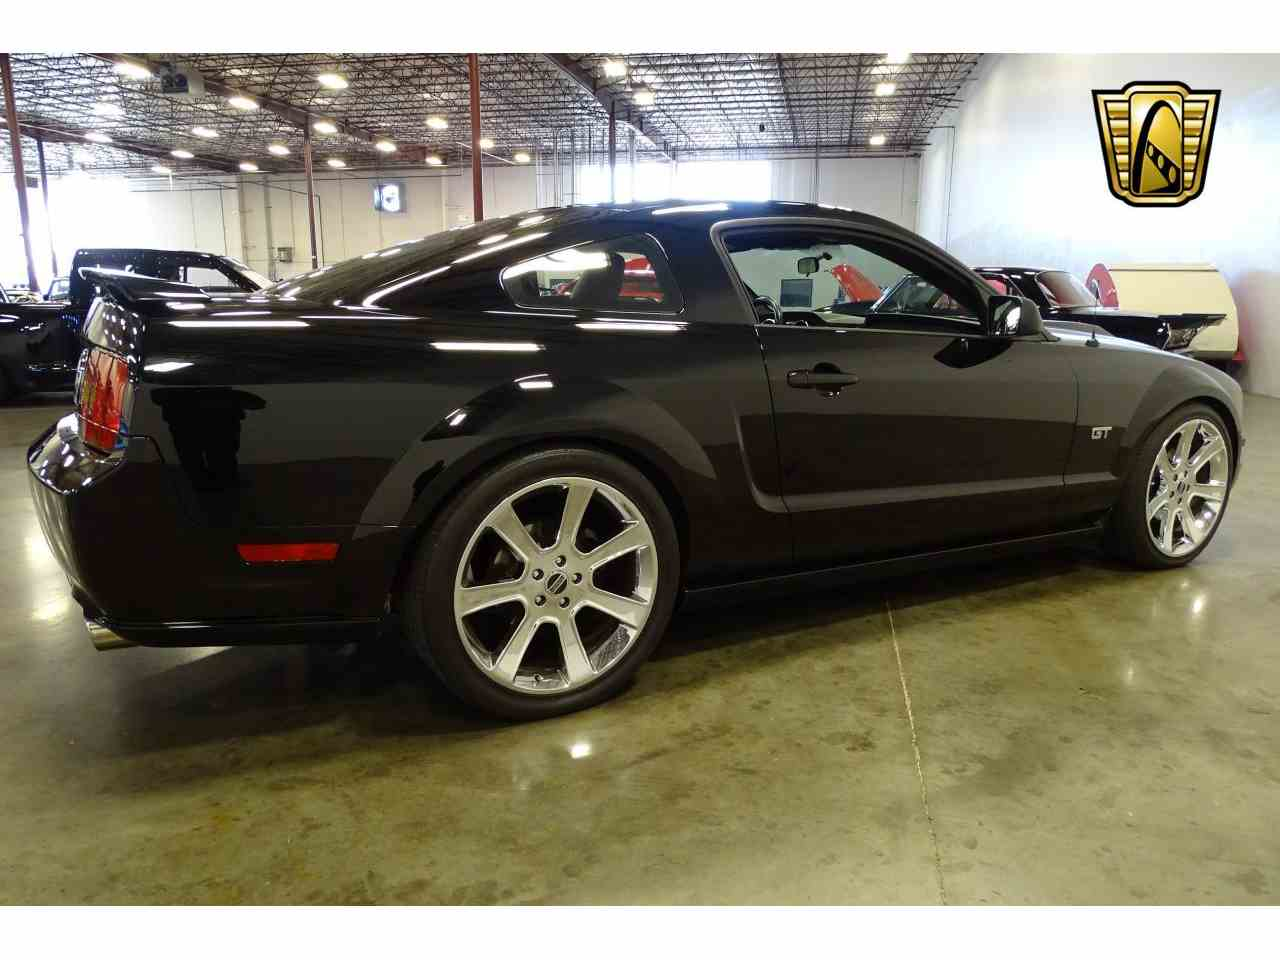 Large Picture of '06 Mustang located in Tennessee Offered by Gateway Classic Cars - Nashville - MFDI